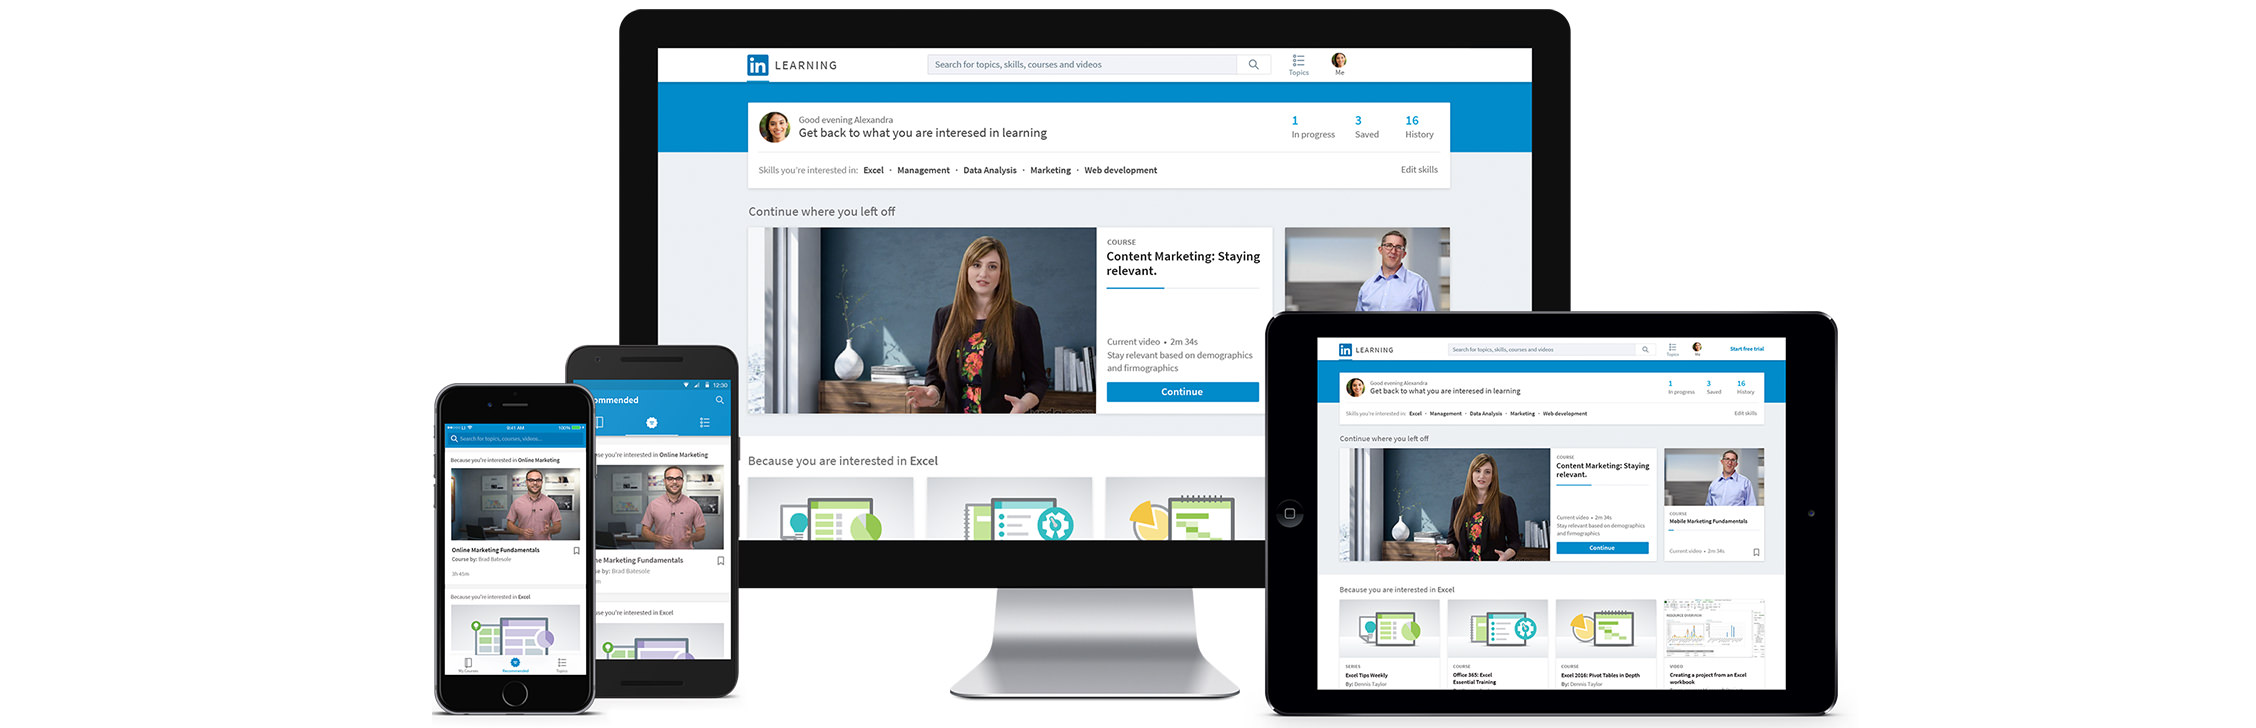 LinkedIn Learning announced to help professionals learn ...